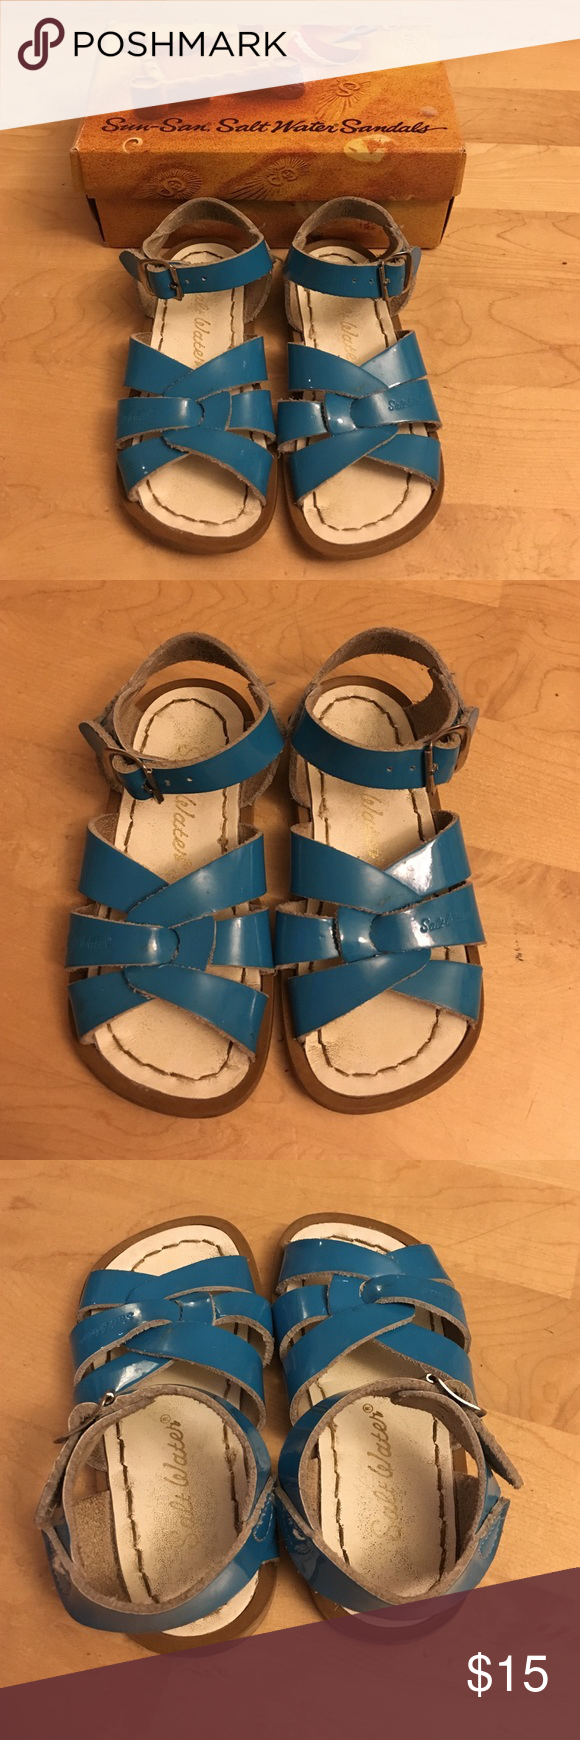 Salt water sandals hoy shoes size